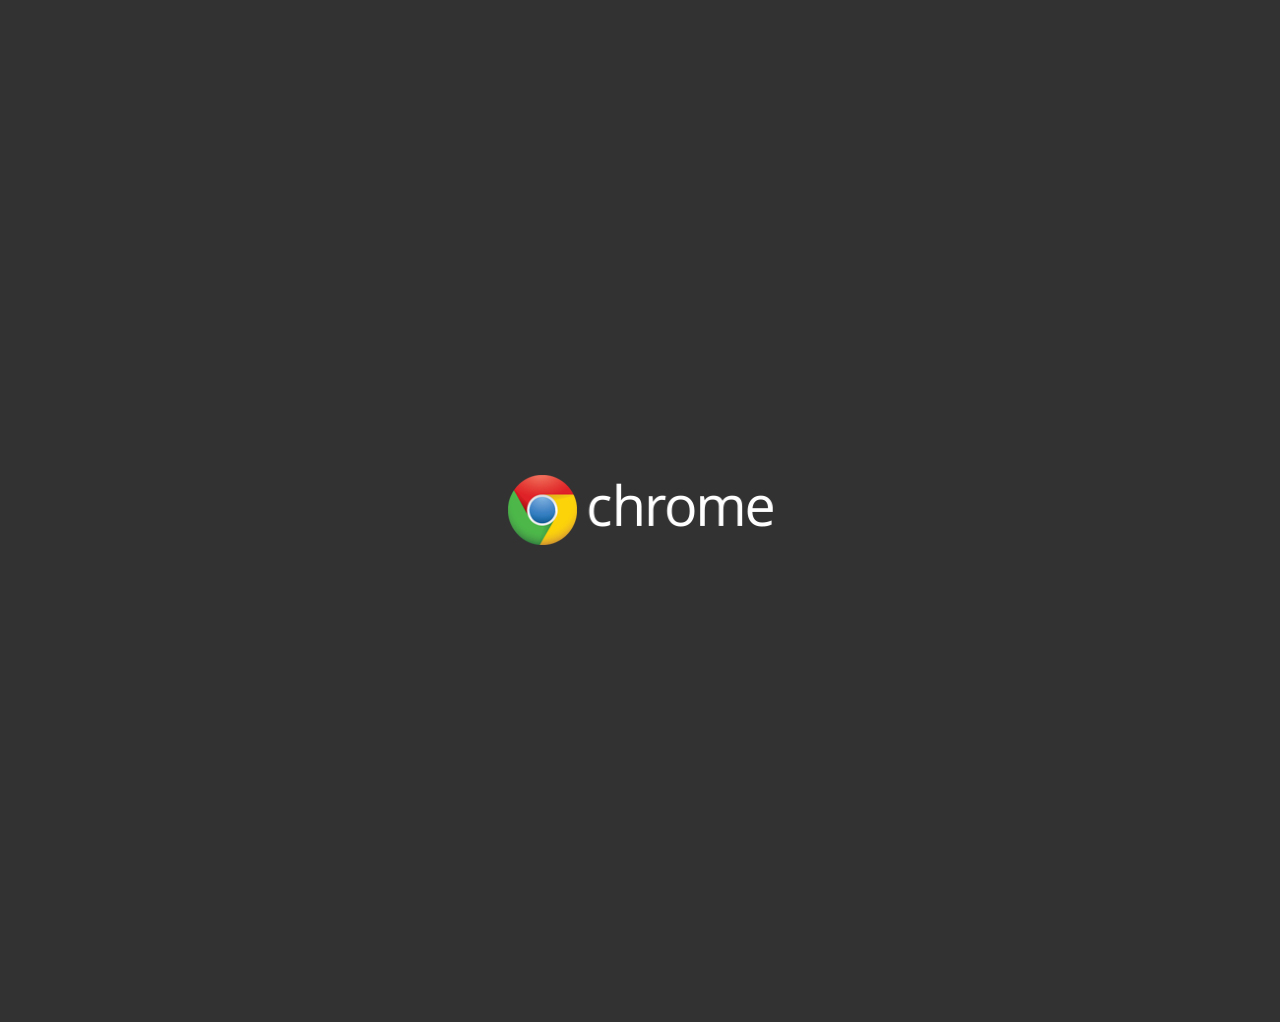 chromesplash.png